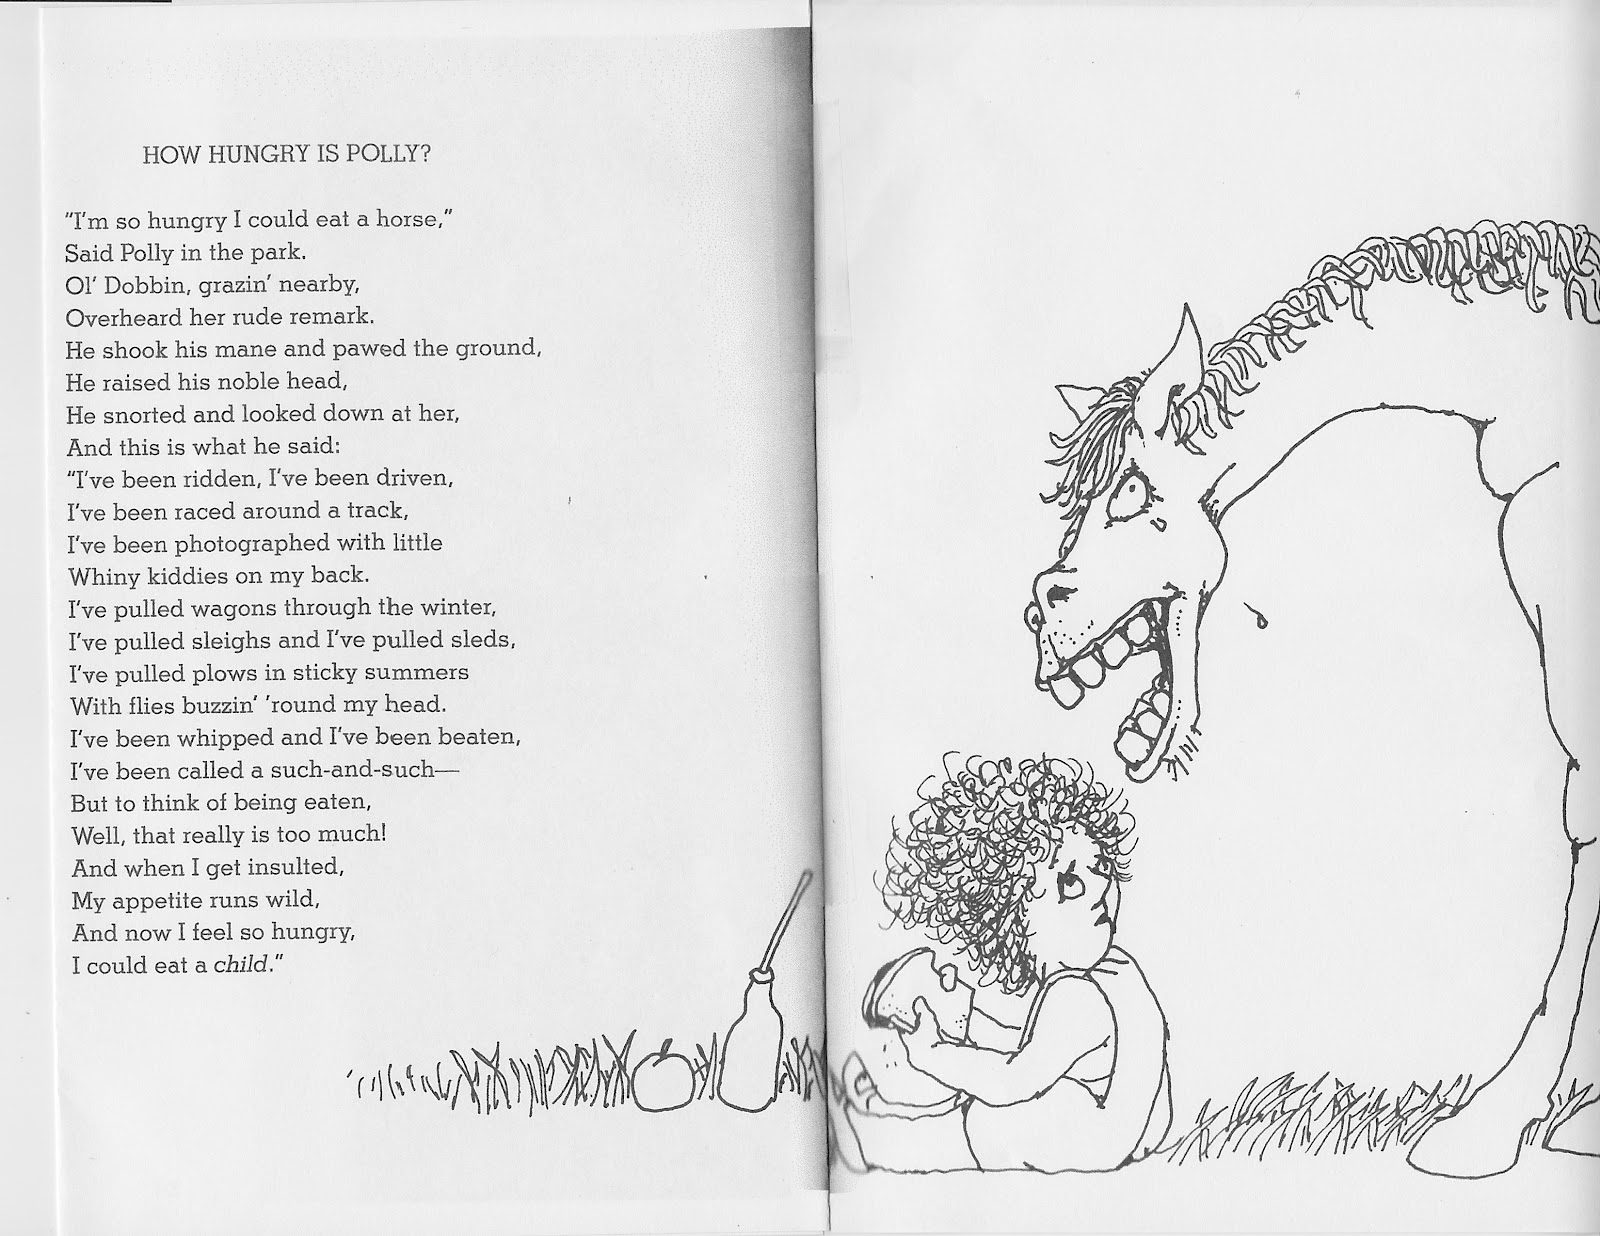 Funny Poems By Shel Silverstein: Children 4 Horses: How Hungry Is Polly